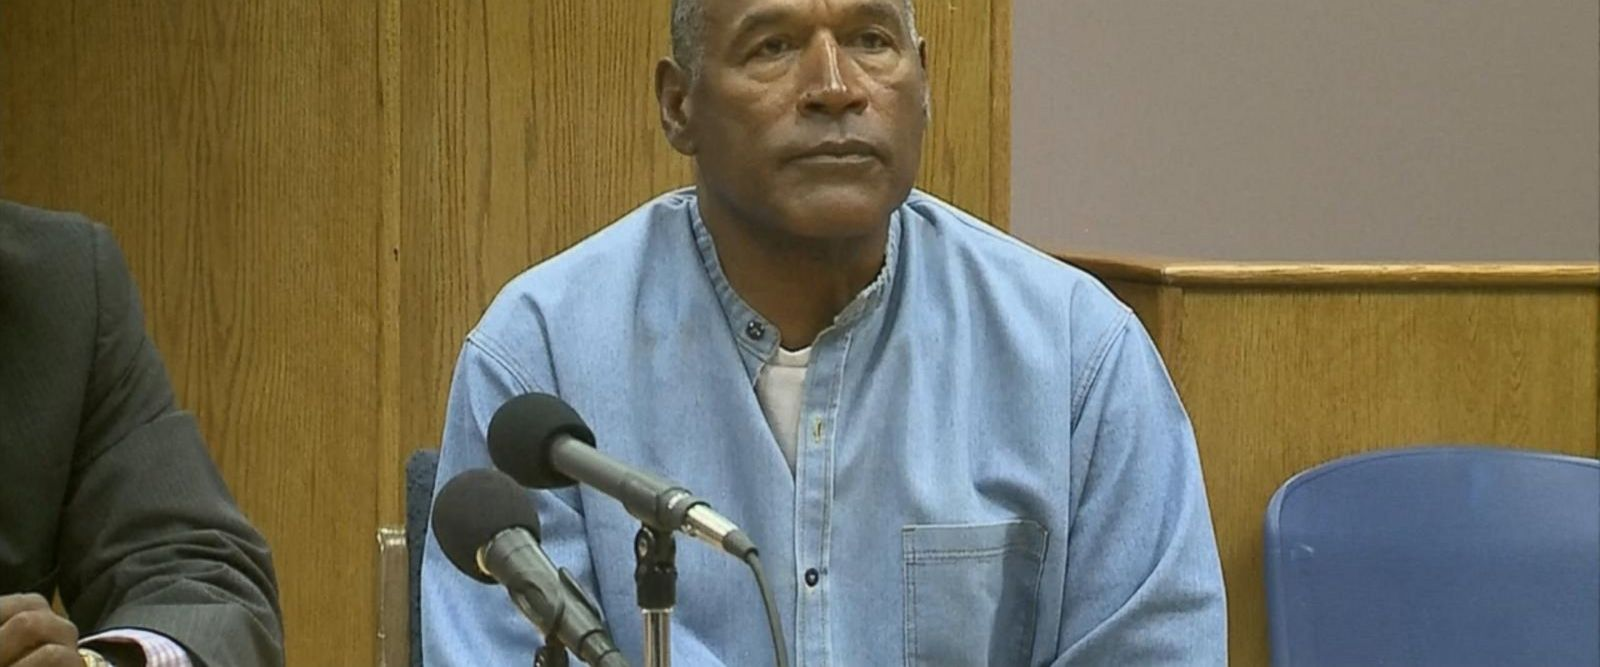 VIDEO: OJ Simpson granted parole after Las Vegas robbery